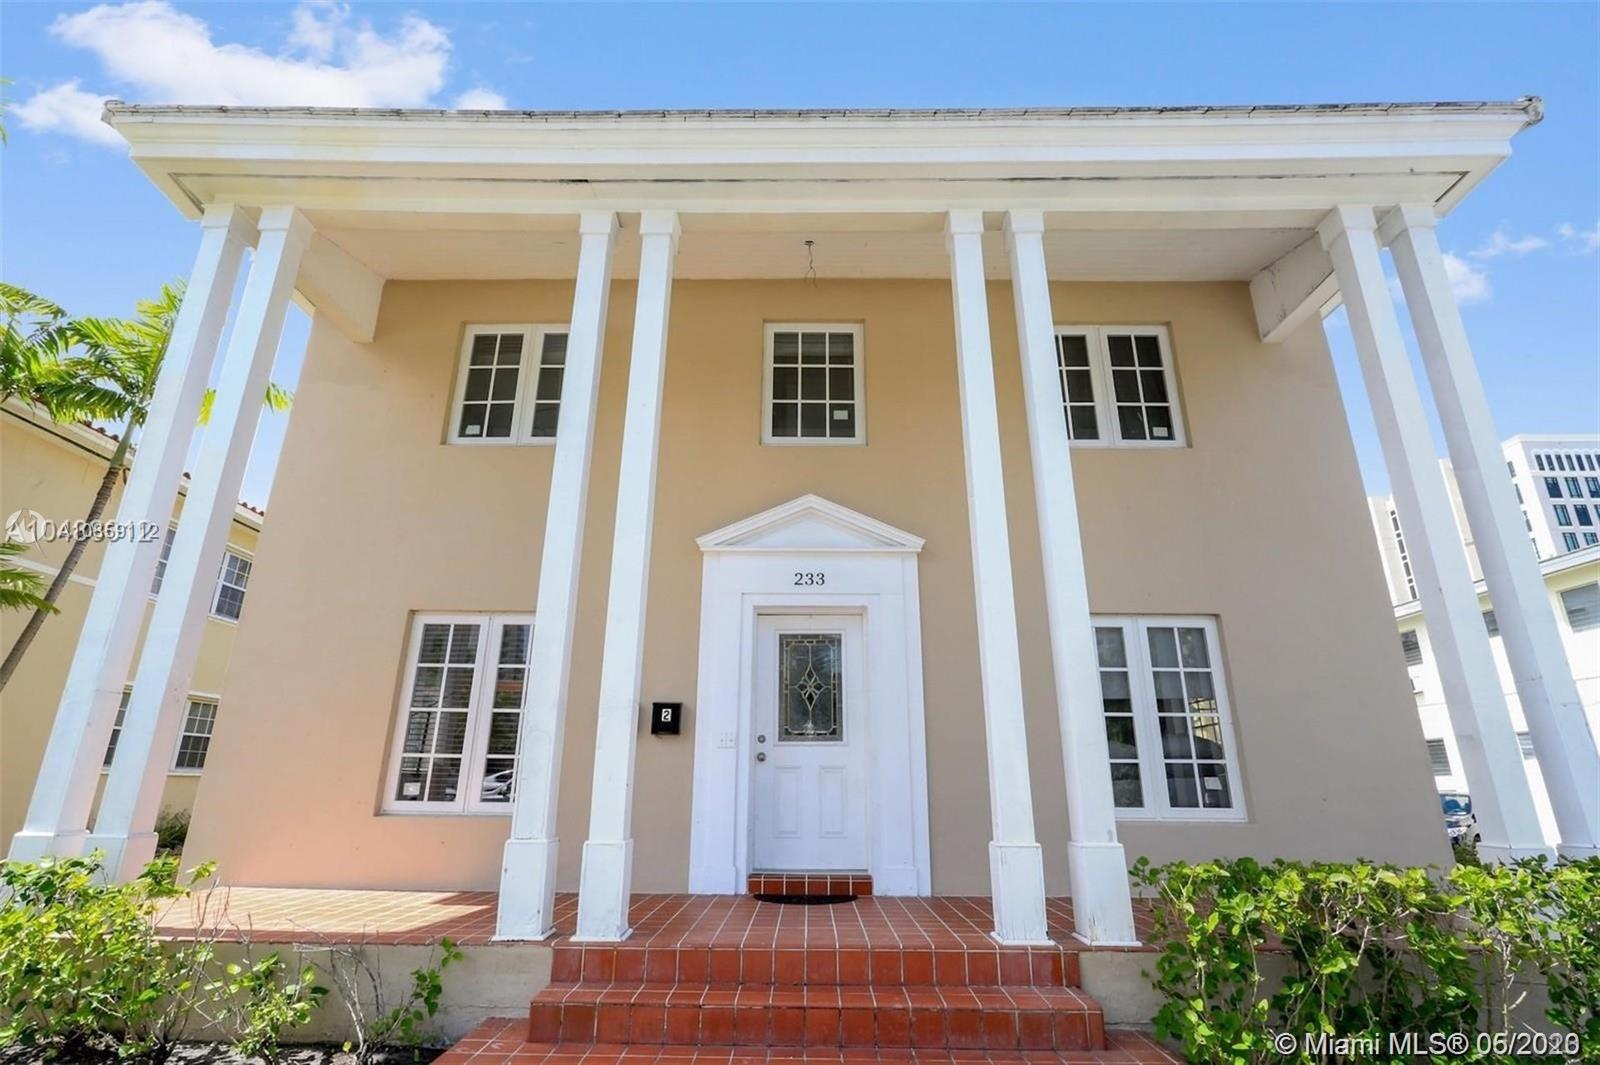 233  Madeira Ave  For Sale A10859112, FL